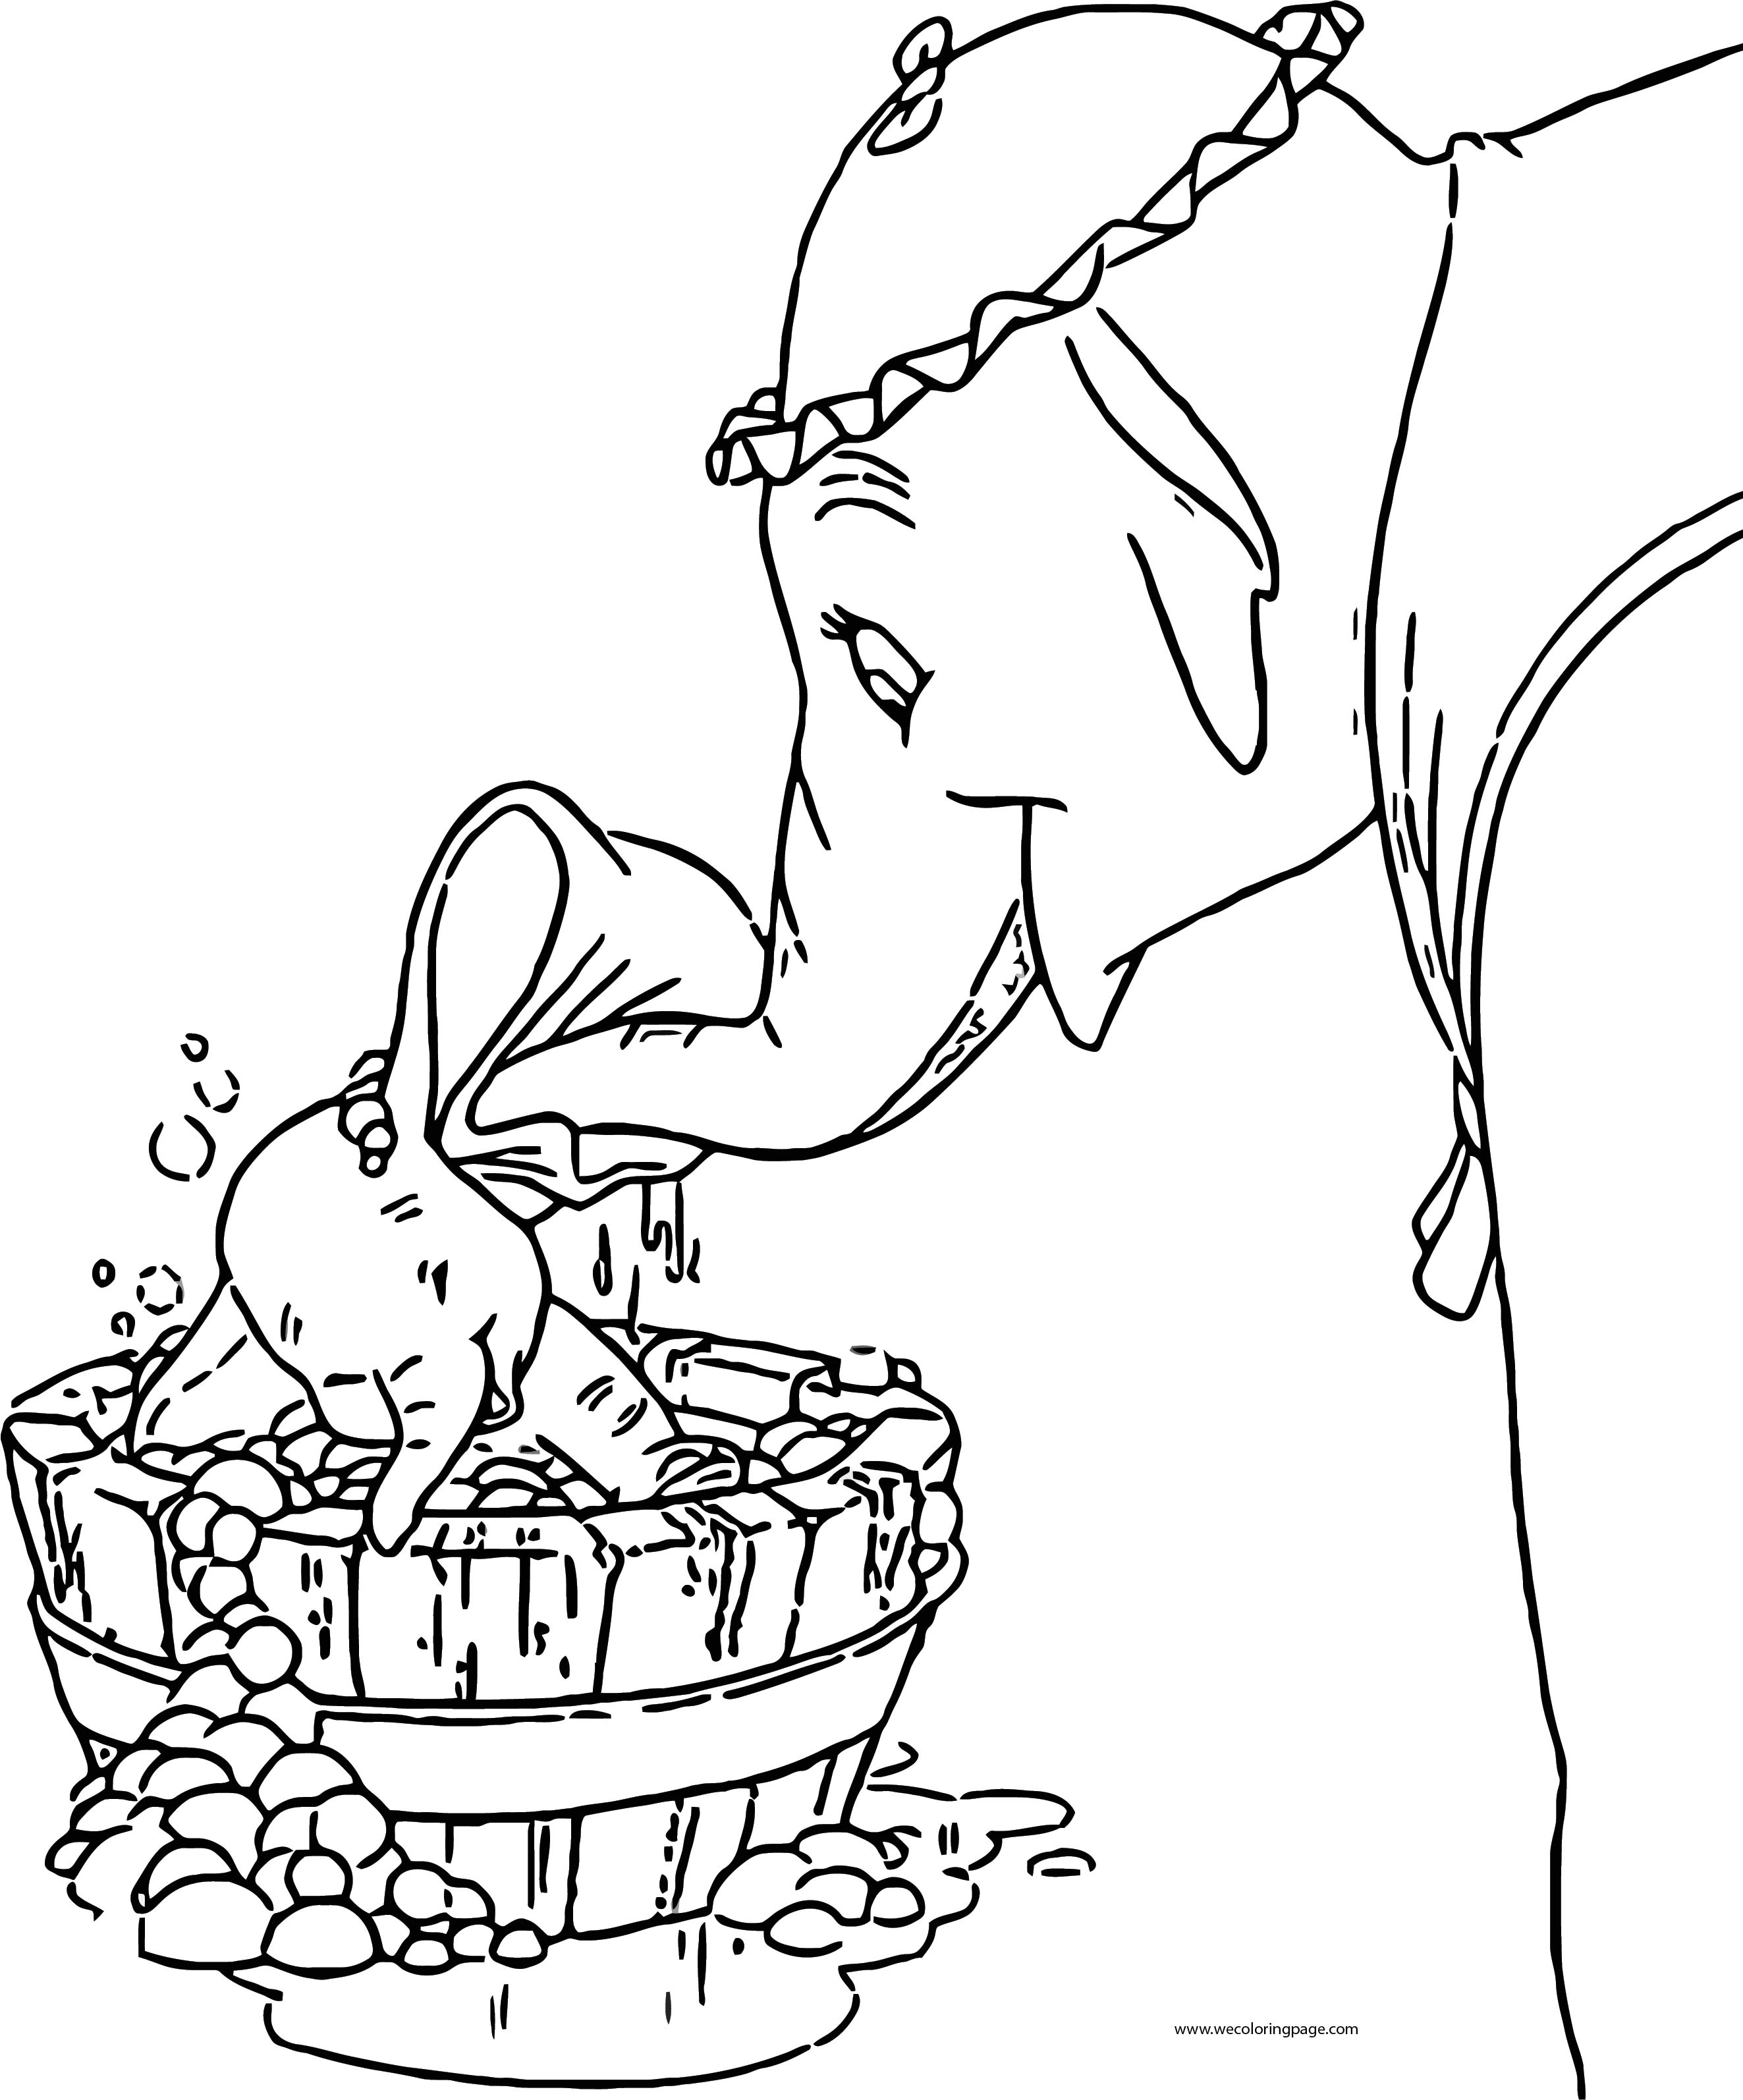 bath time coloring pages - photo#9